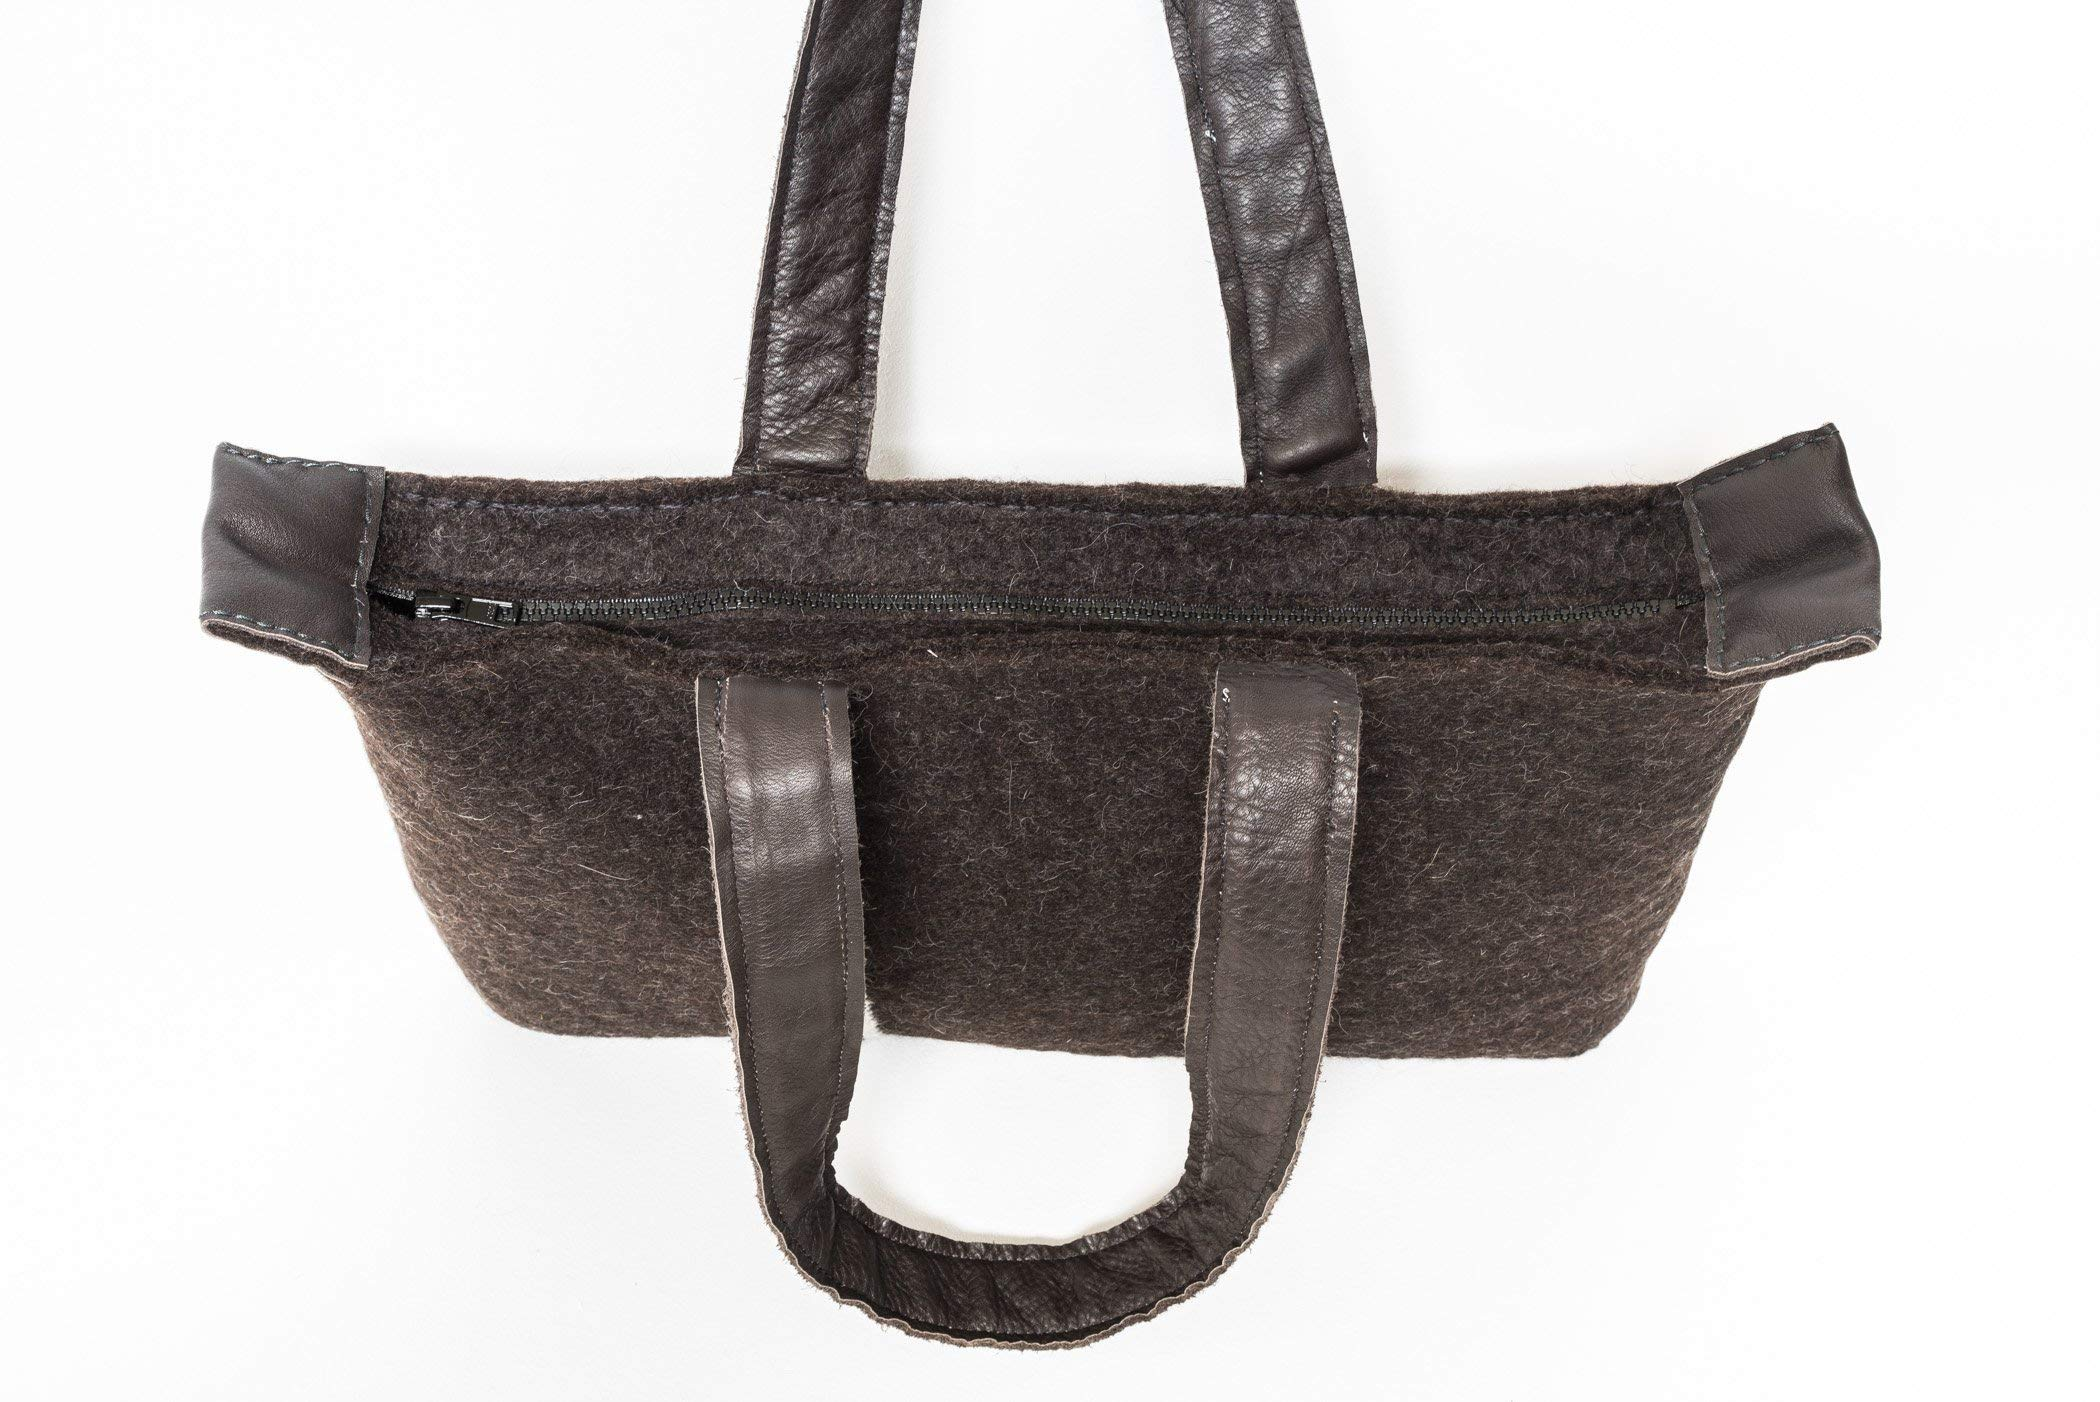 Felted tote bag - with handwoven handles with leather detail - handmade in Finnish Lapland from Finnish wool - handmade-bags